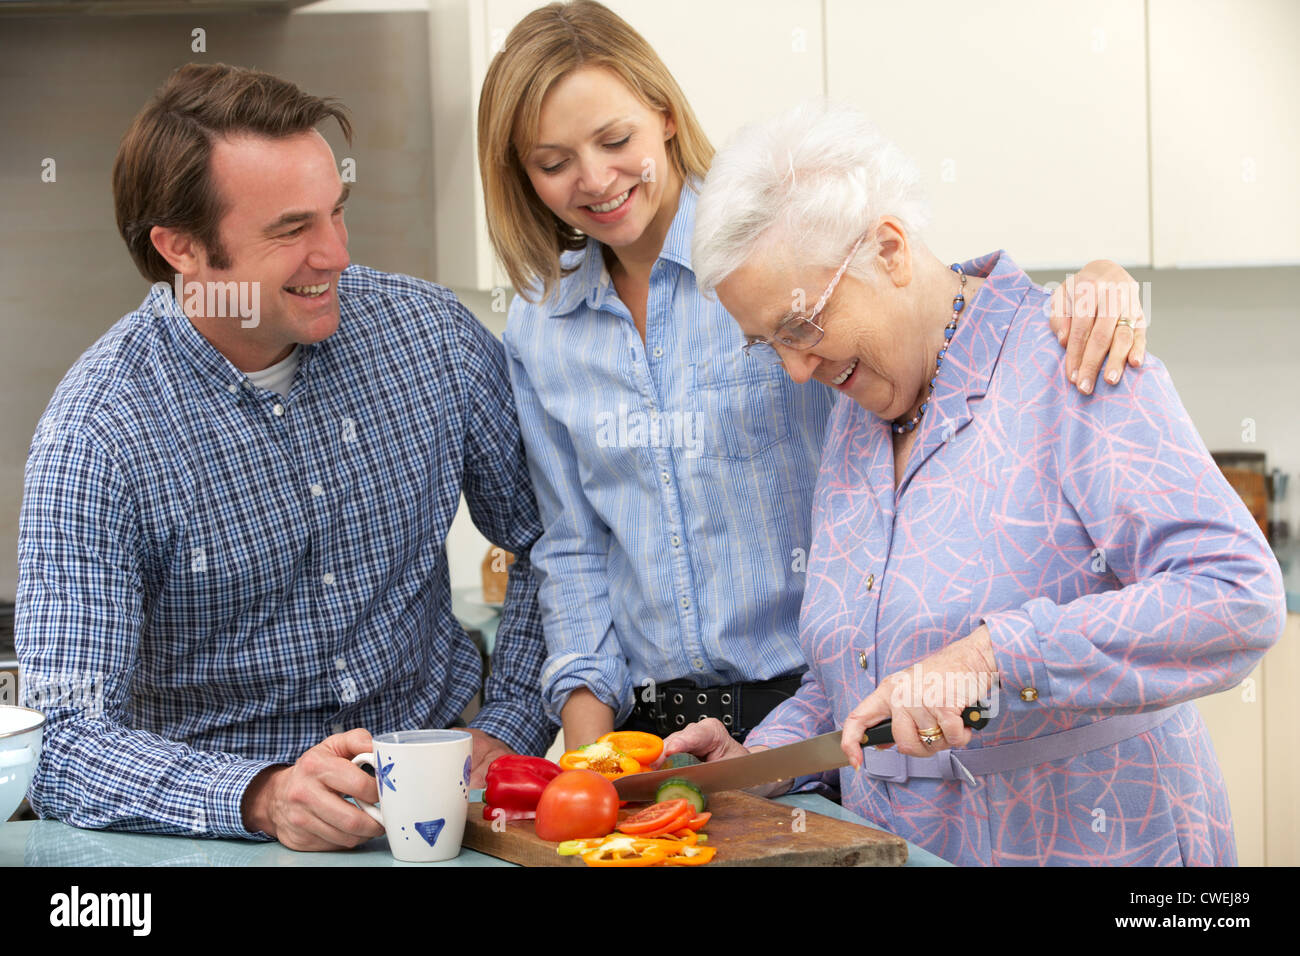 Senior woman and family preparing meal together - Stock Image